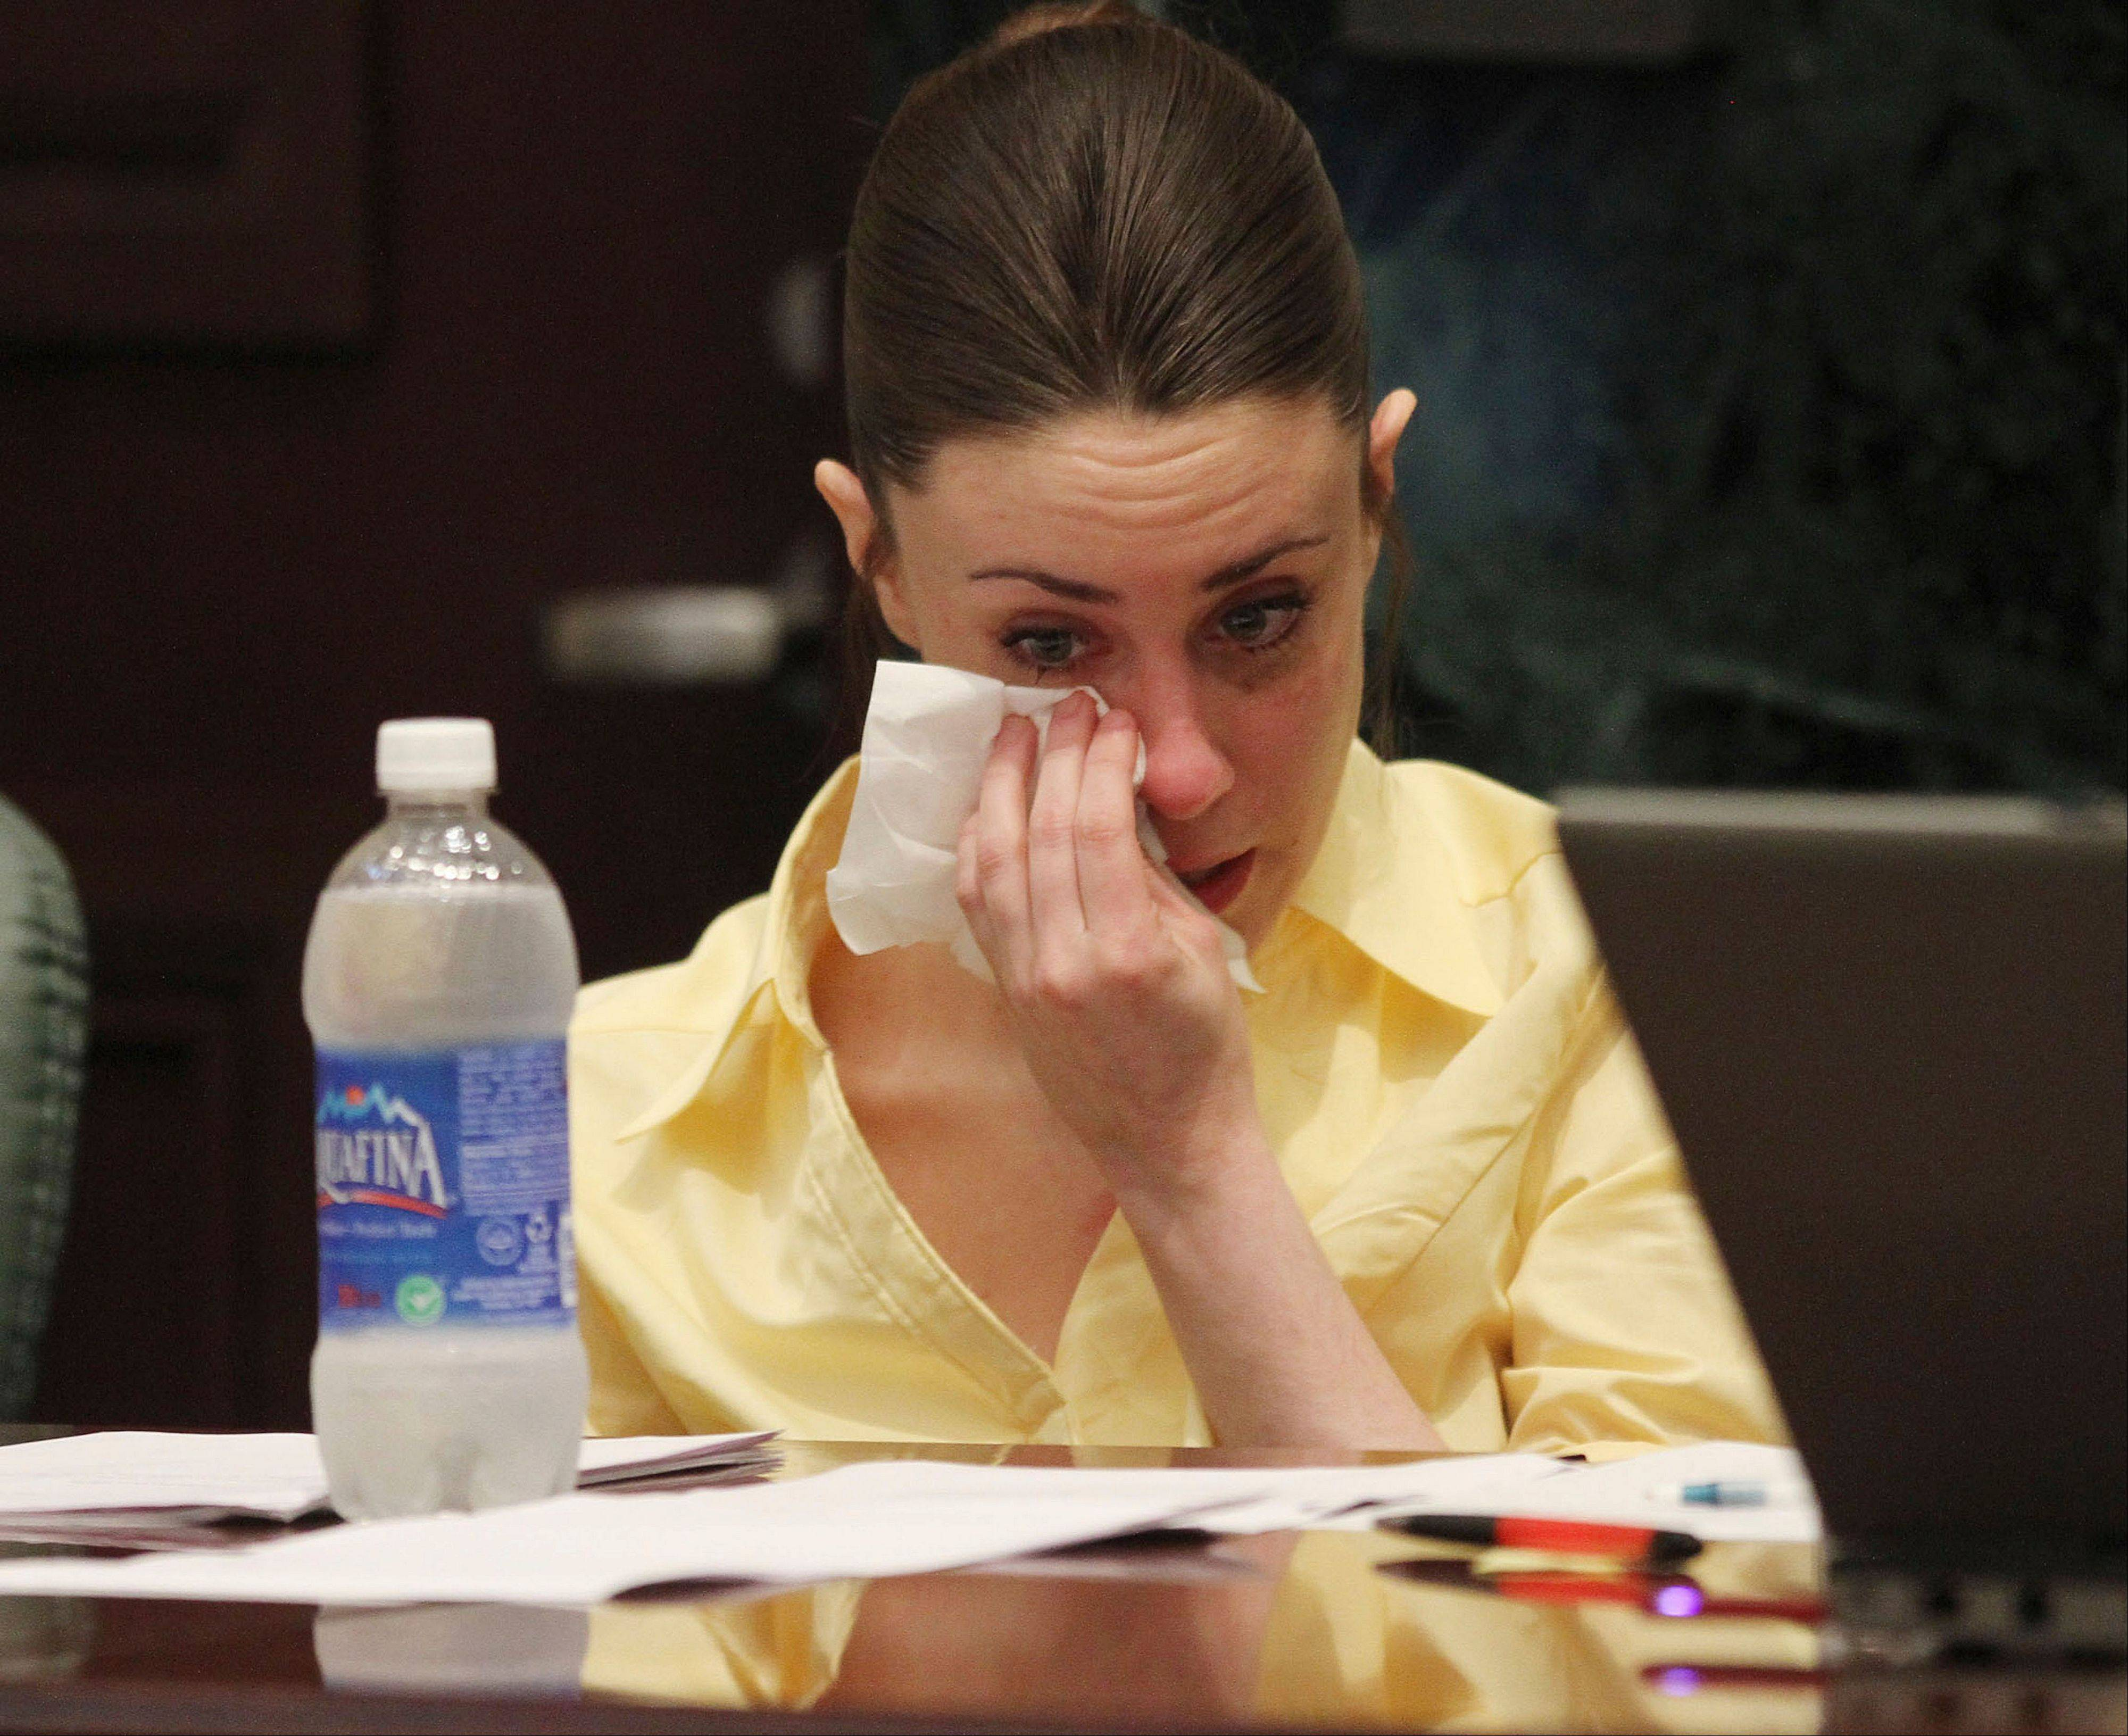 Casey Anthony reacts as the state presents its closing arguments in her murder trial in Orlando, Fla., Sunday. Anthony has plead not guilty to first-degree murder in the death of her daughter and could face the death penalty if convicted.